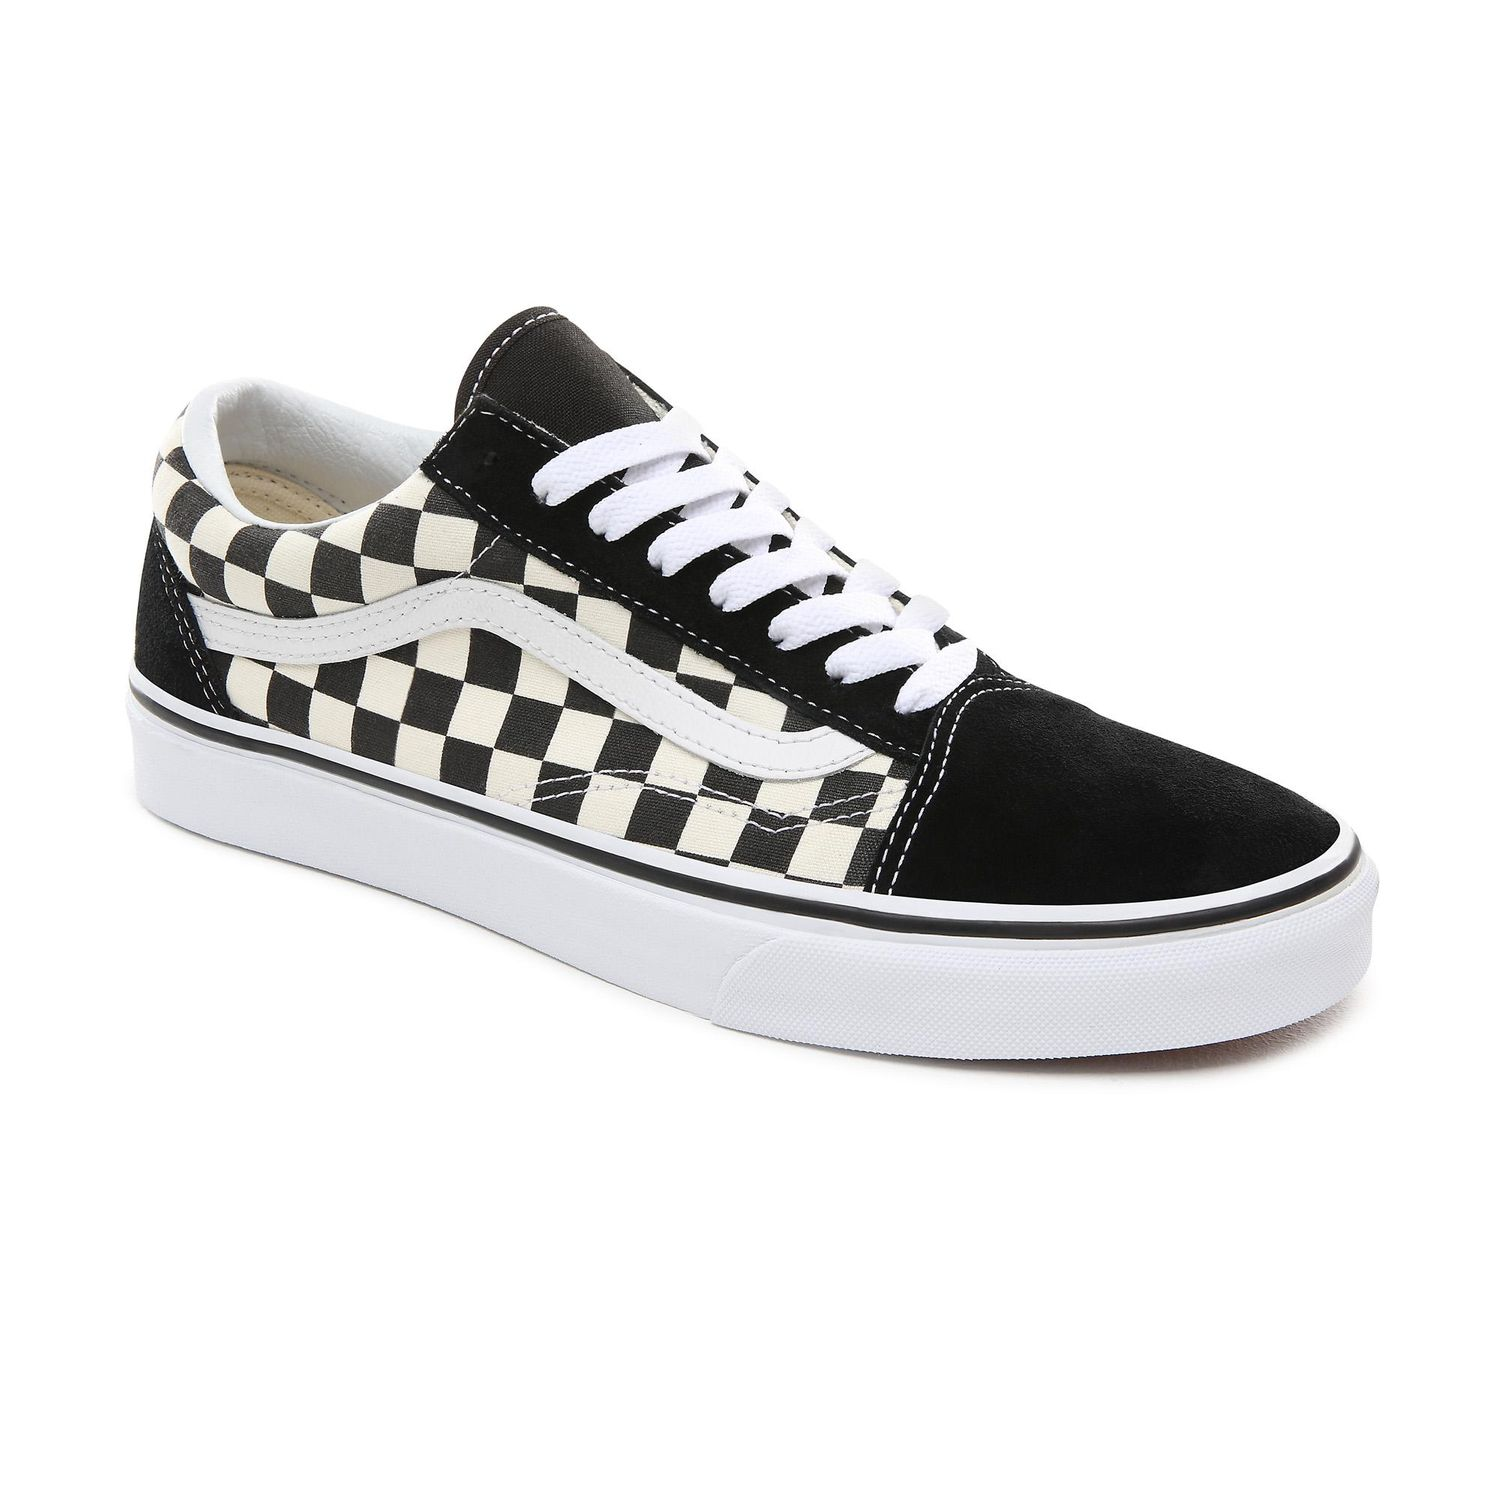 Ténis Vans Ua Old Skool (Primary Check) Blk/White